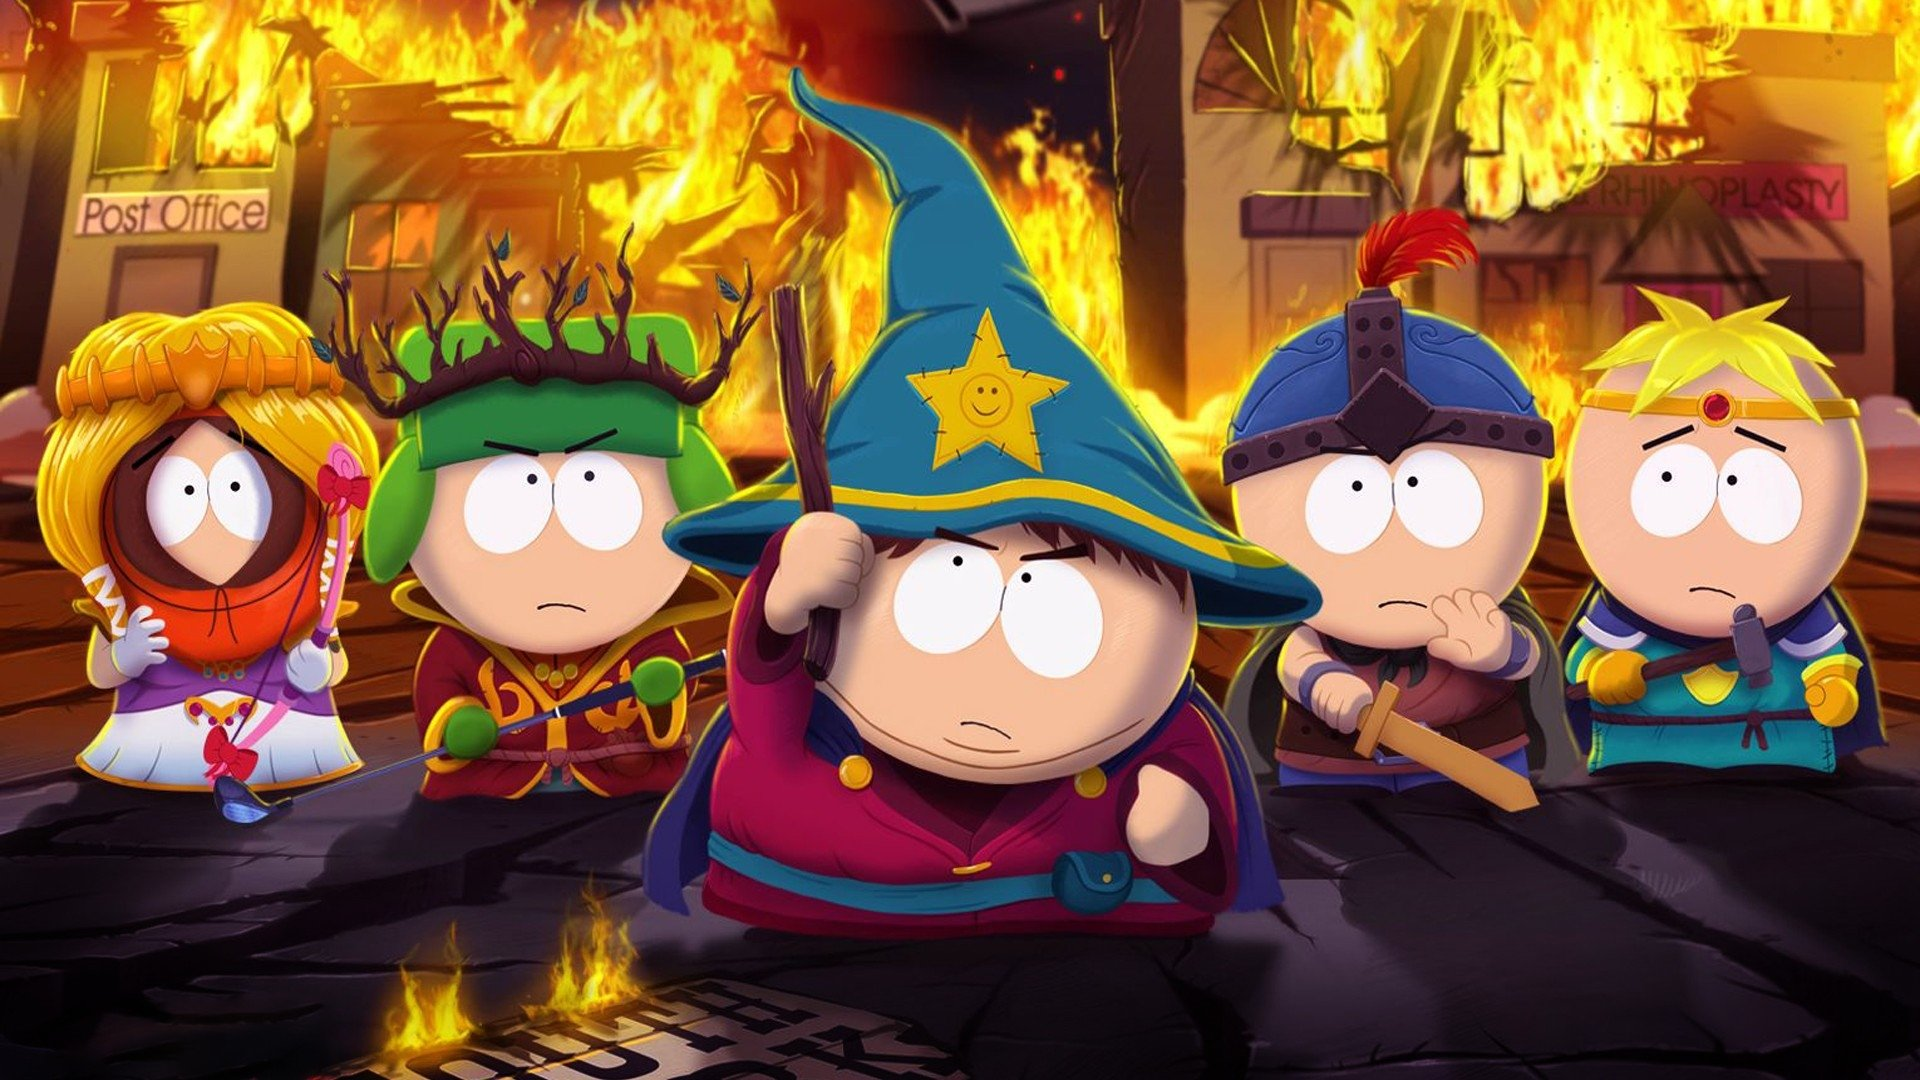 5 South Park The Stick Of Truth Hd Wallpapers Background Images